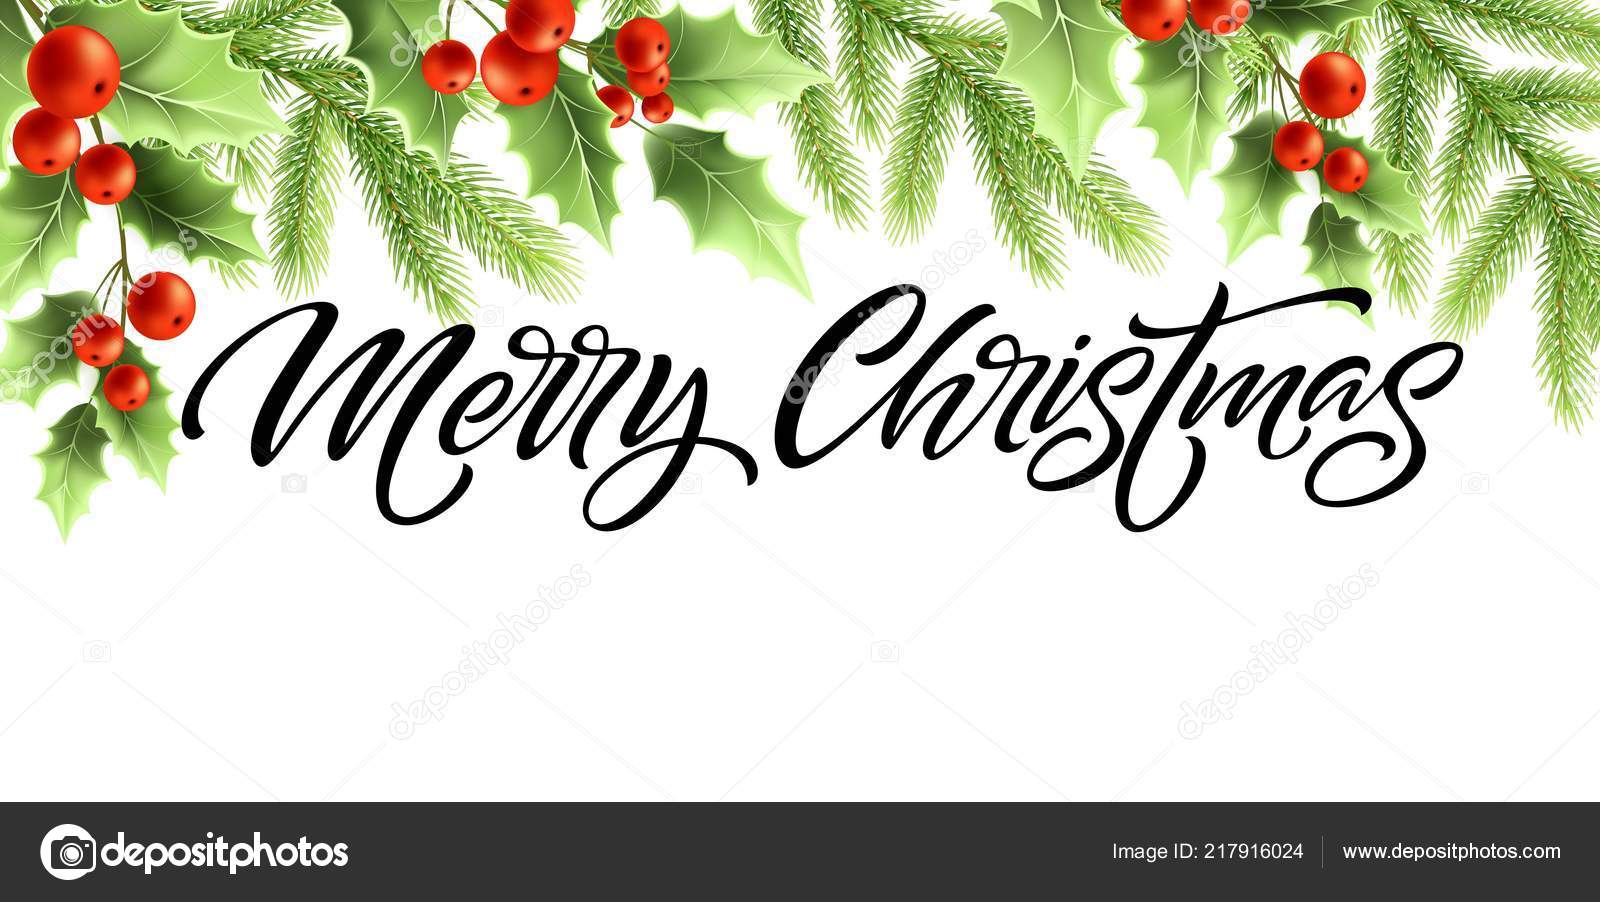 merry christmas and happy new year banner design stock vector c vik y 217916024 https depositphotos com 217916024 stock illustration merry christmas and happy new html